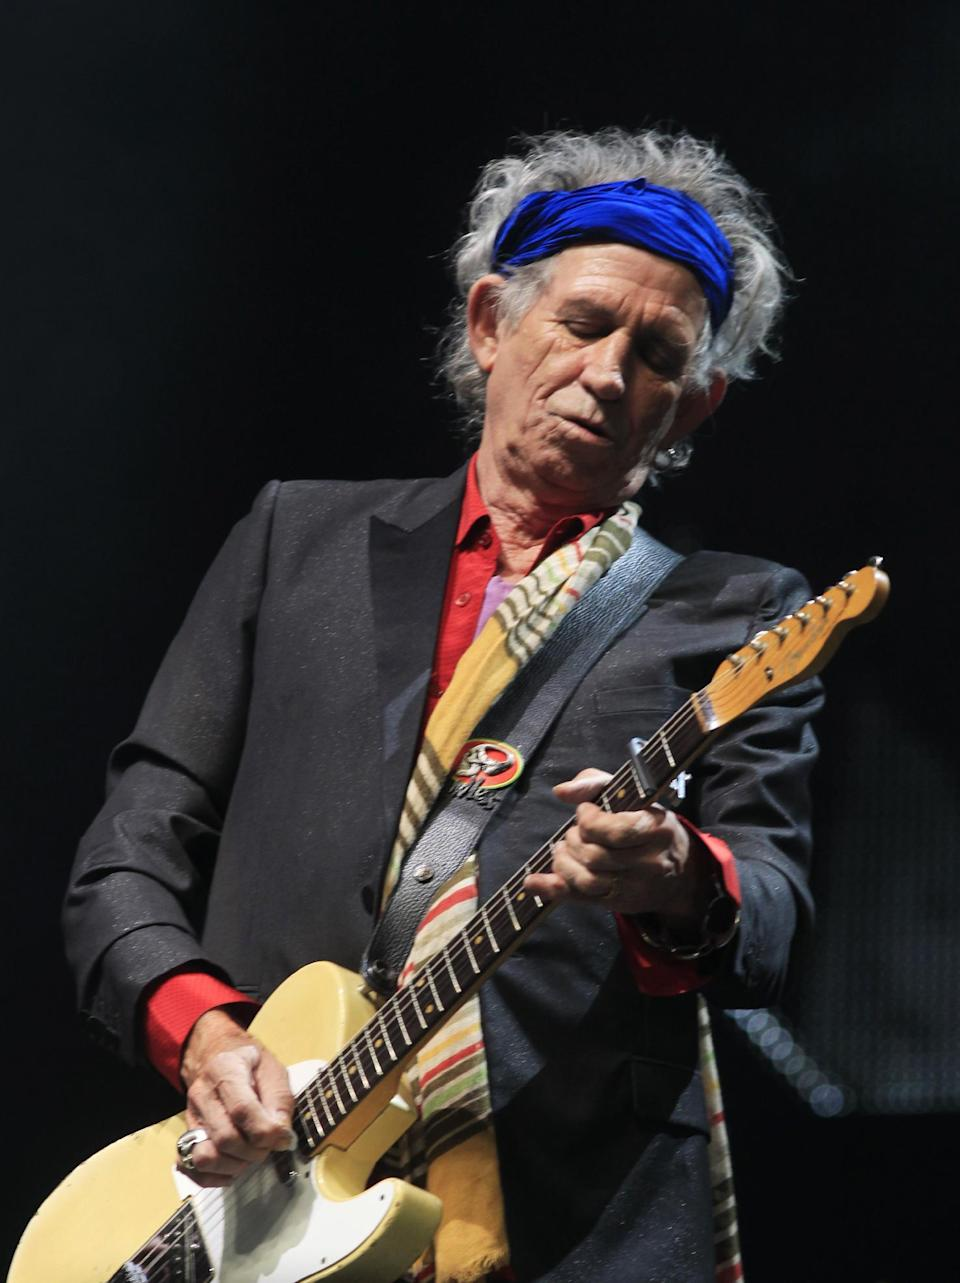 Keith Richards of The Rolling Stones performs at Glastonbury, England on Saturday, June 29, 2013. Thousands are to enjoy the three day festival that started on Friday, June 28, 2013 with headliners Arctic Monkeys, the Rolling Stones and Mumford and Sons. (Photo by Jim Ross/Invision/AP)